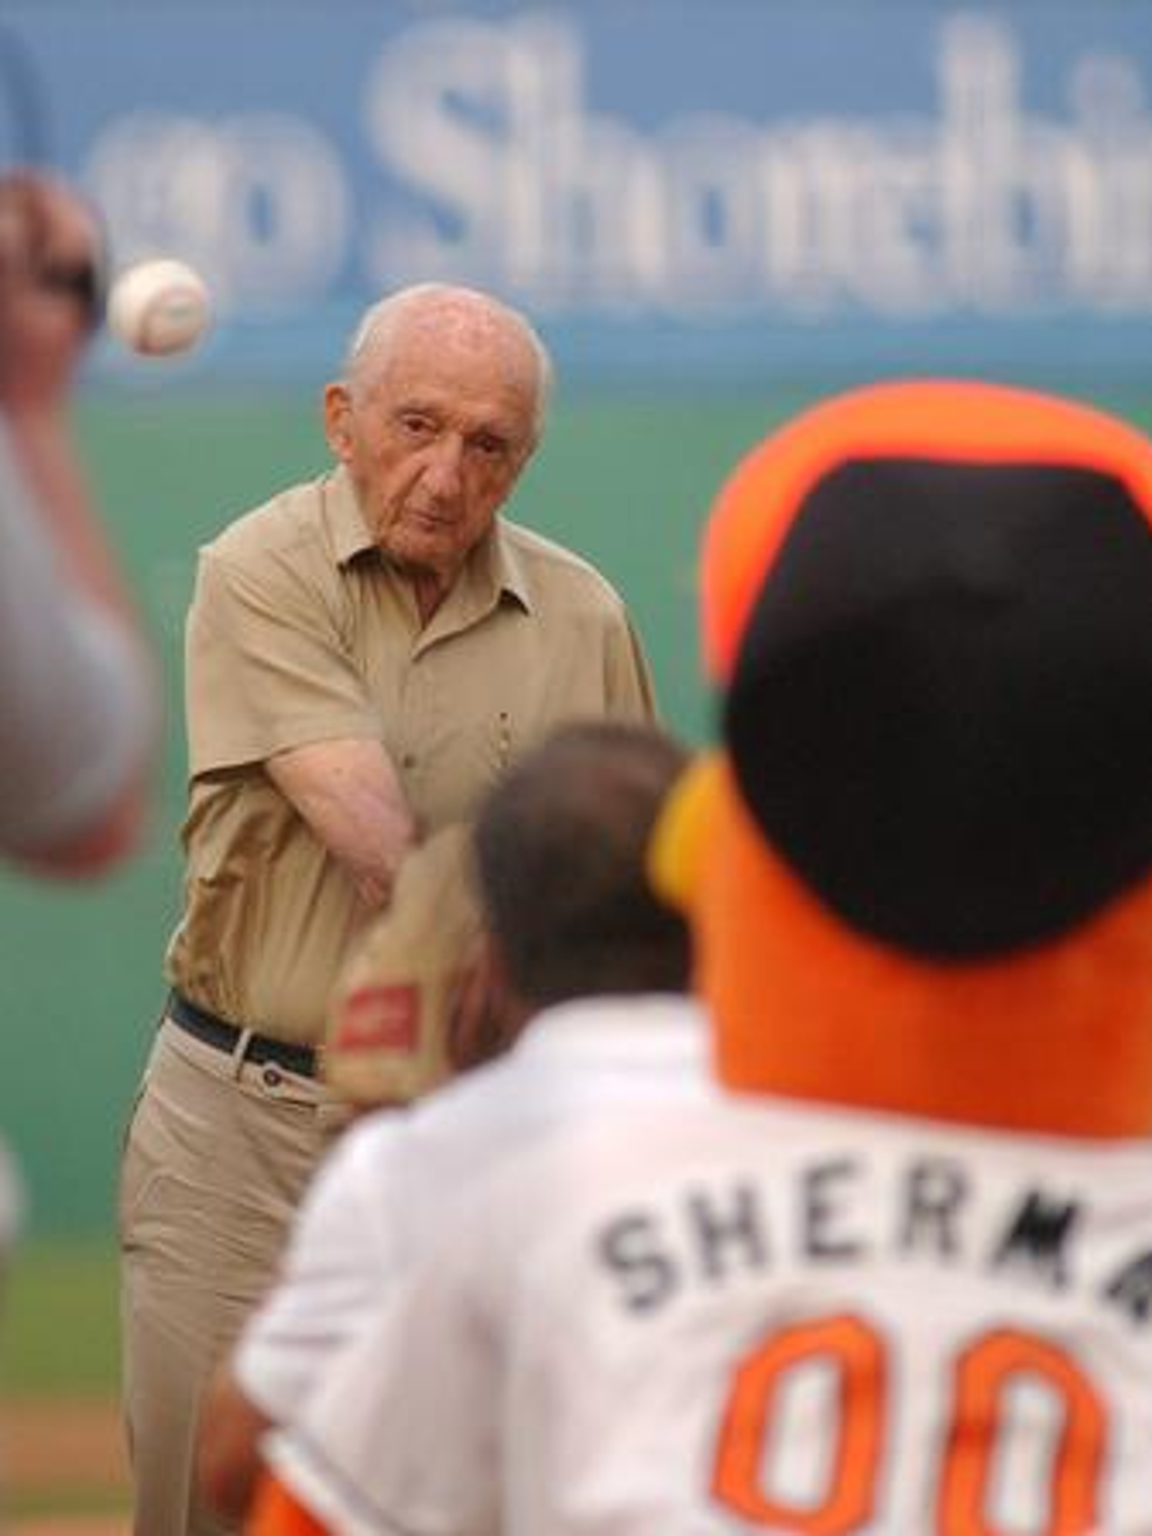 Frank Perdue throws out a first pitch to Sherman in